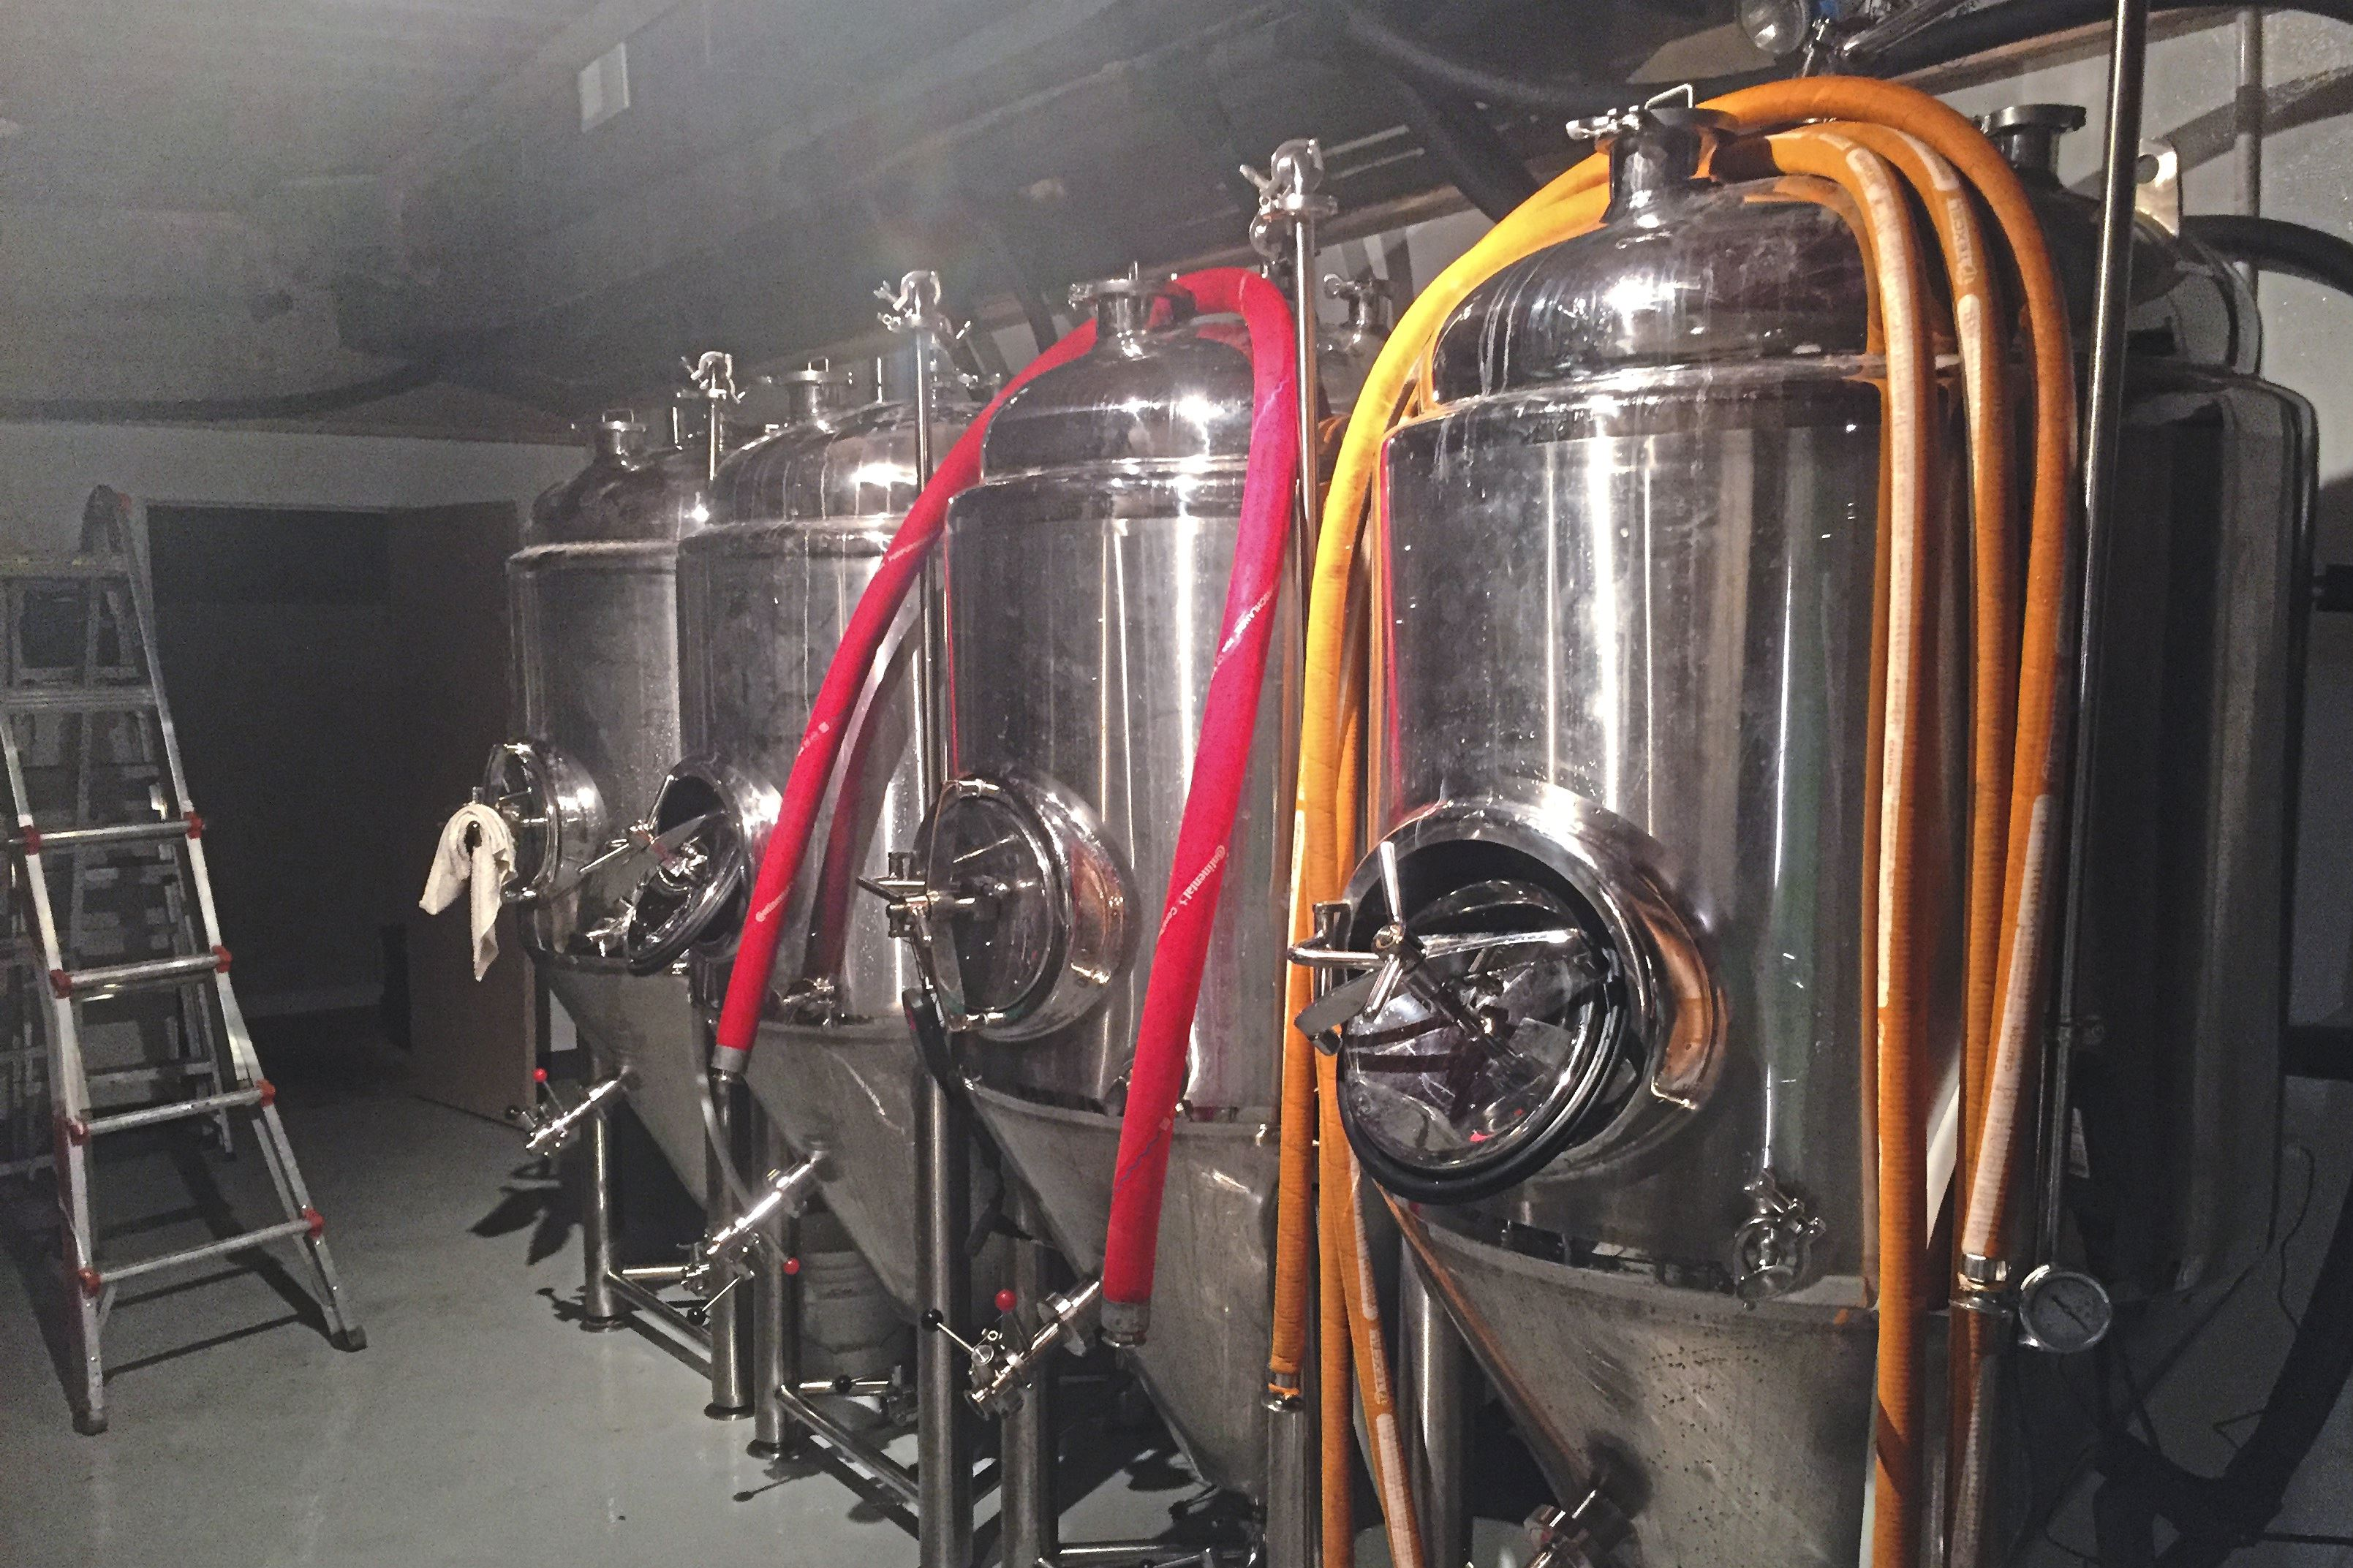 image4 (1)-2 The new Conny Creek Brewing Co. near Lower Burrell in Westmoreland County.